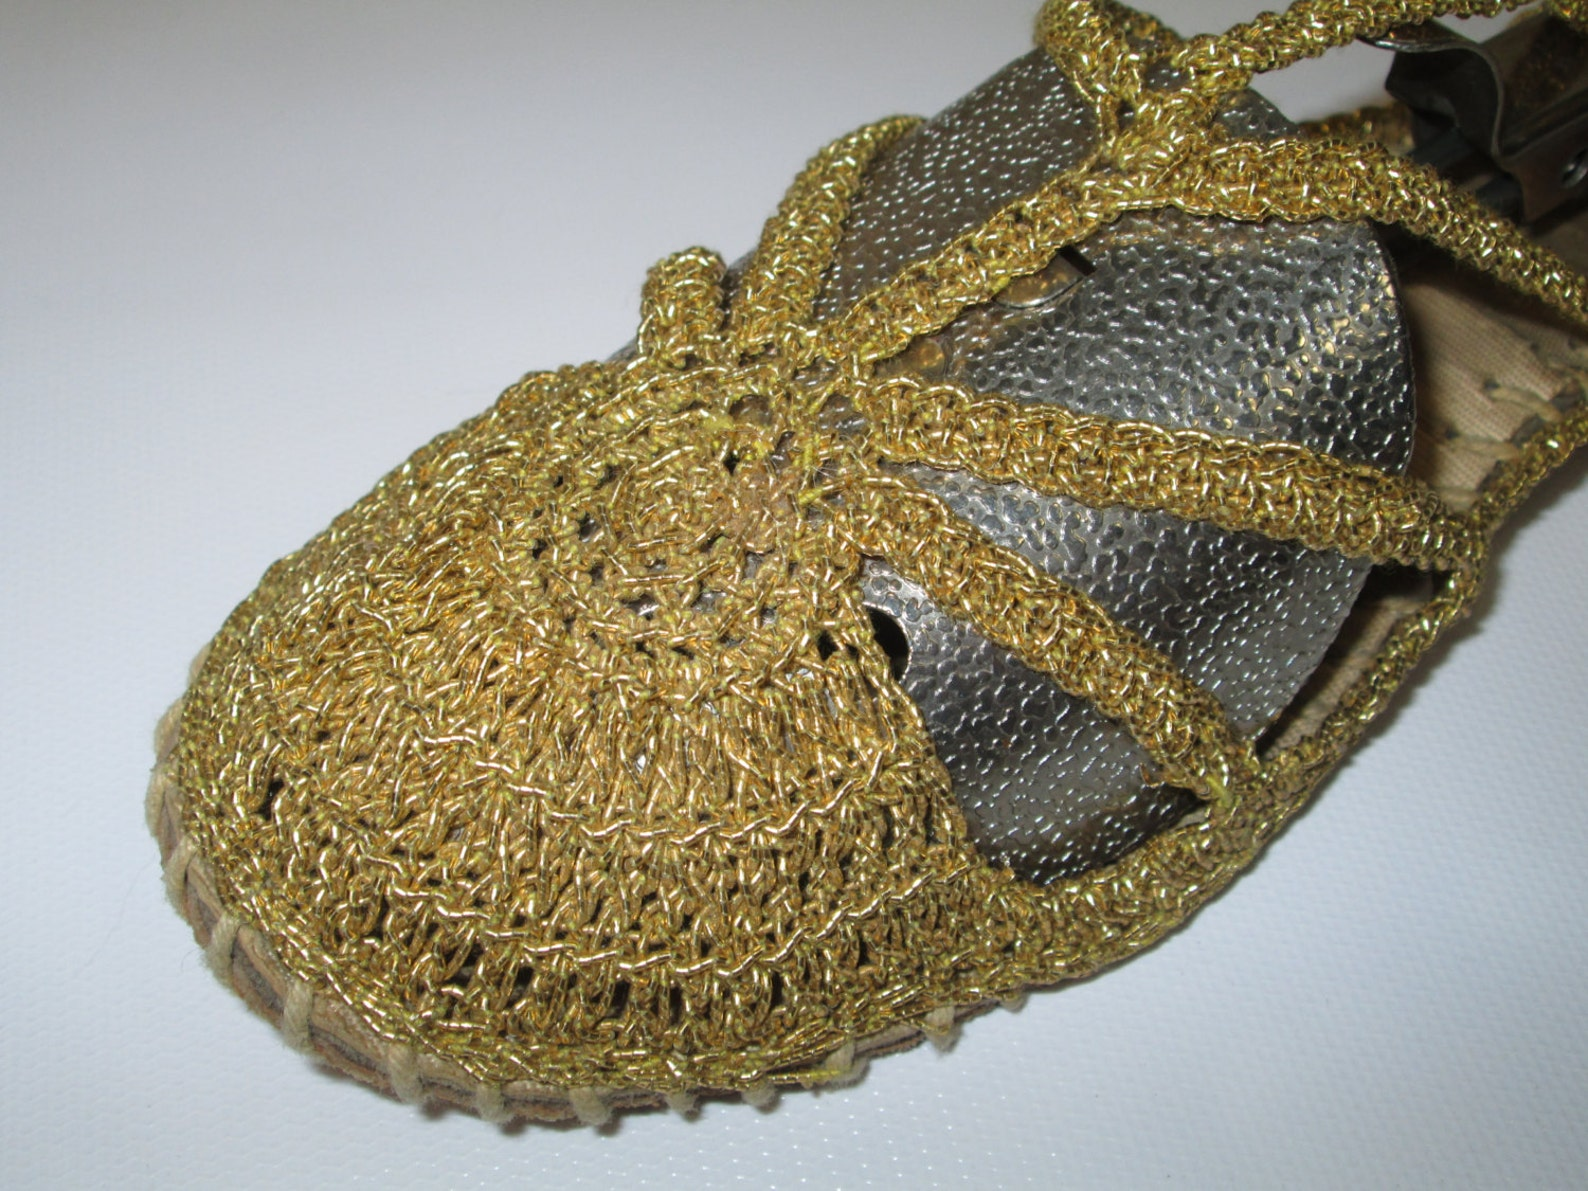 gladiator gold ballet ballerina flats woven crochet slippers dance metallic strappy sandals women's grecian goddess shoes we